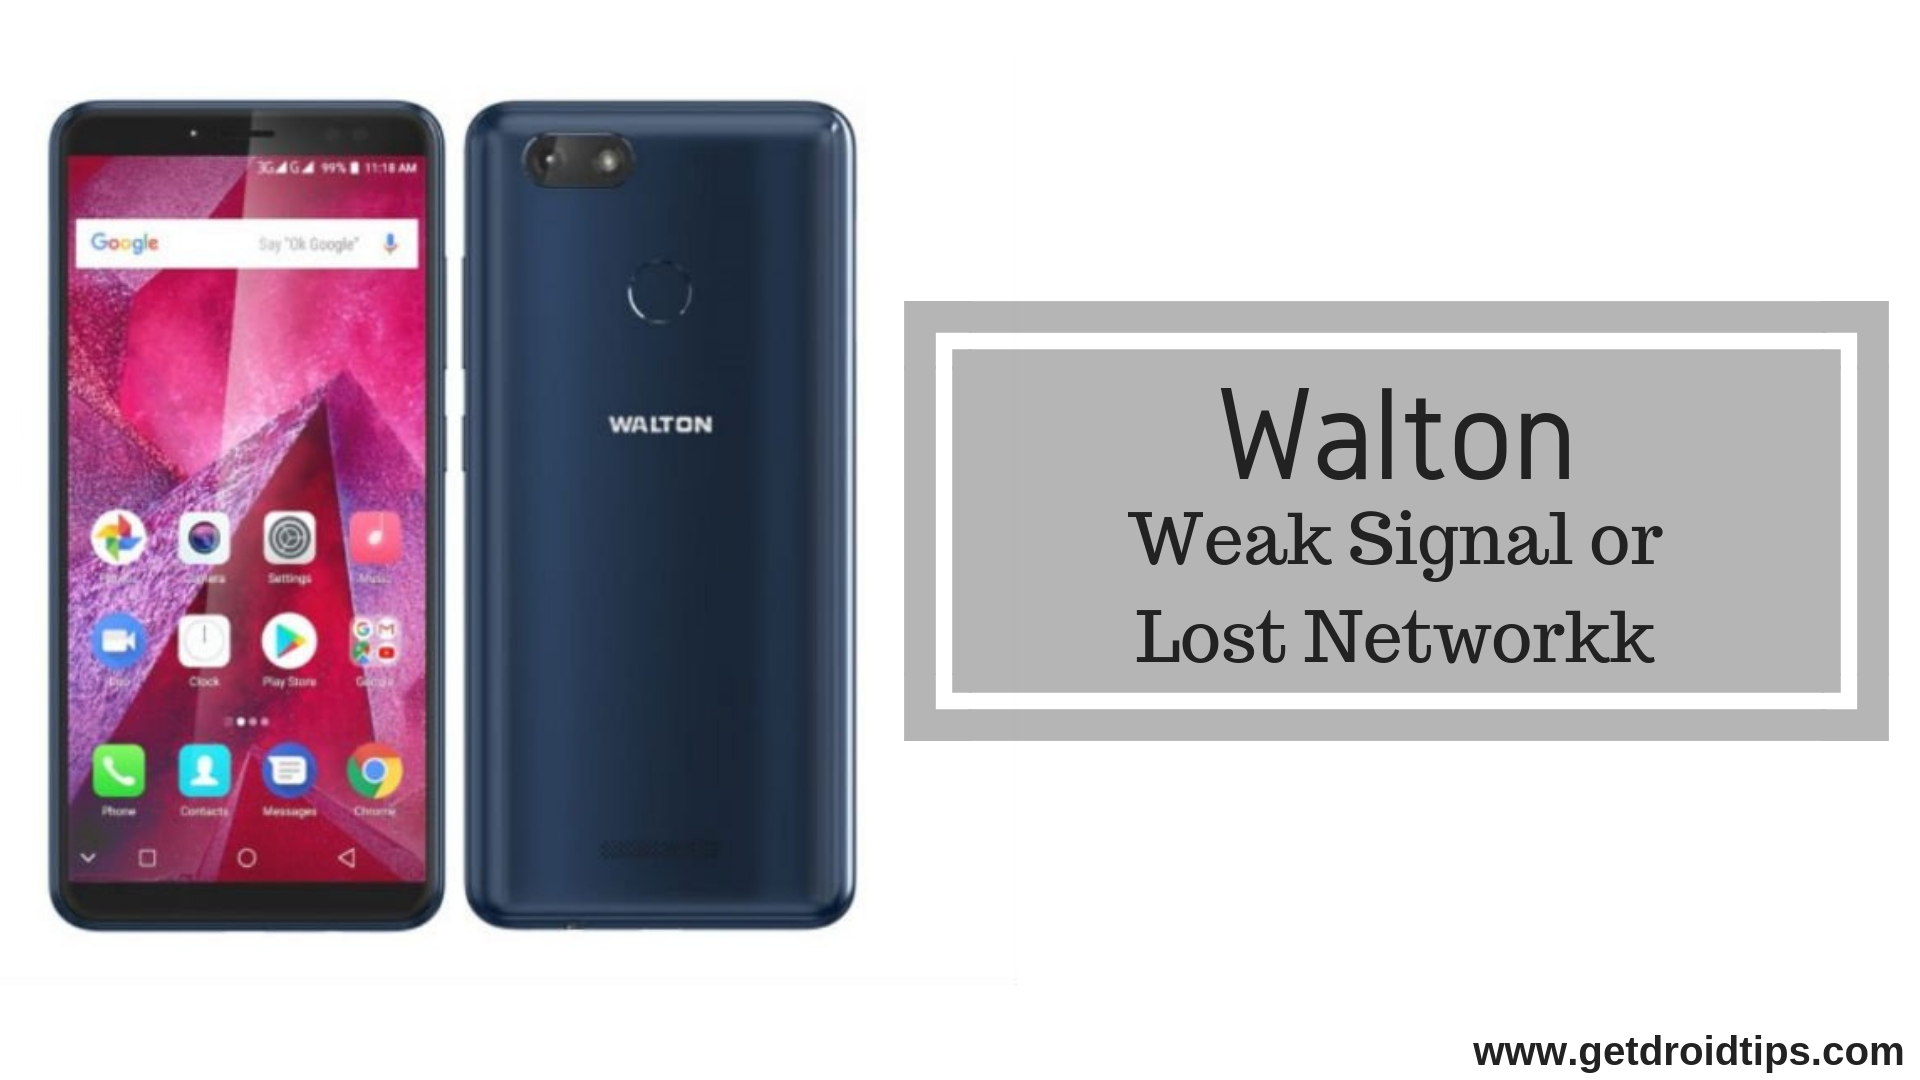 Guide To Fix Walton Weak Signal Or Lost Network Issue